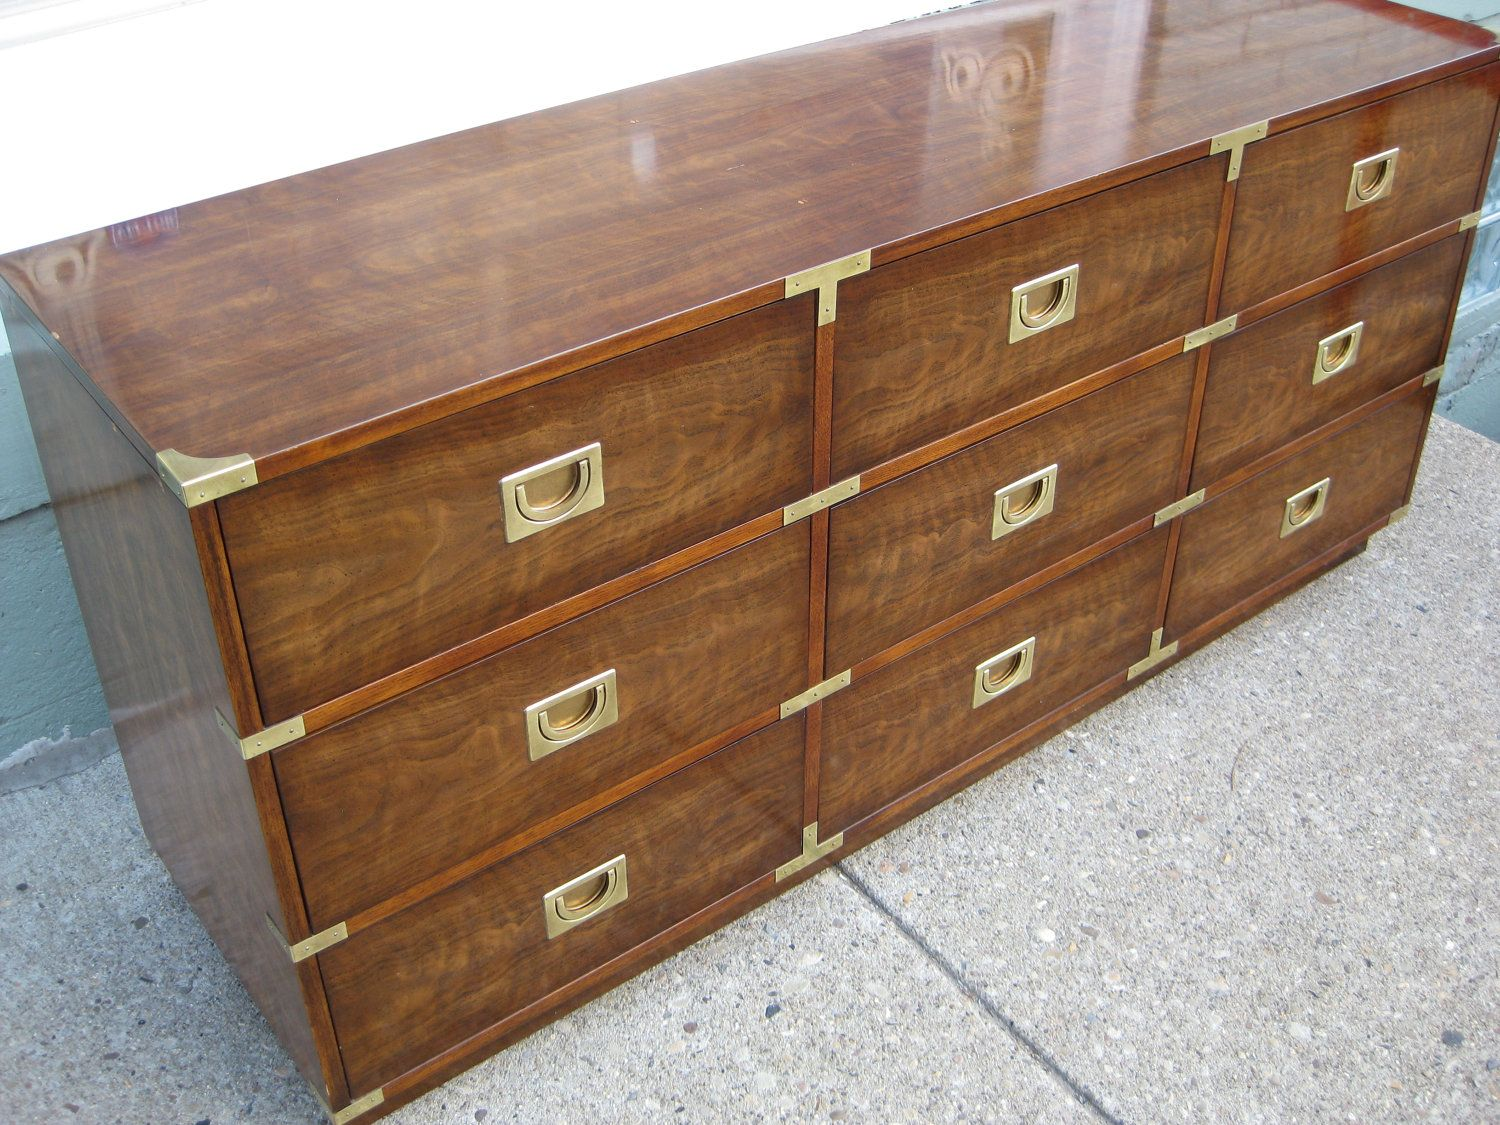 Drexel Campaign Style Credenza.